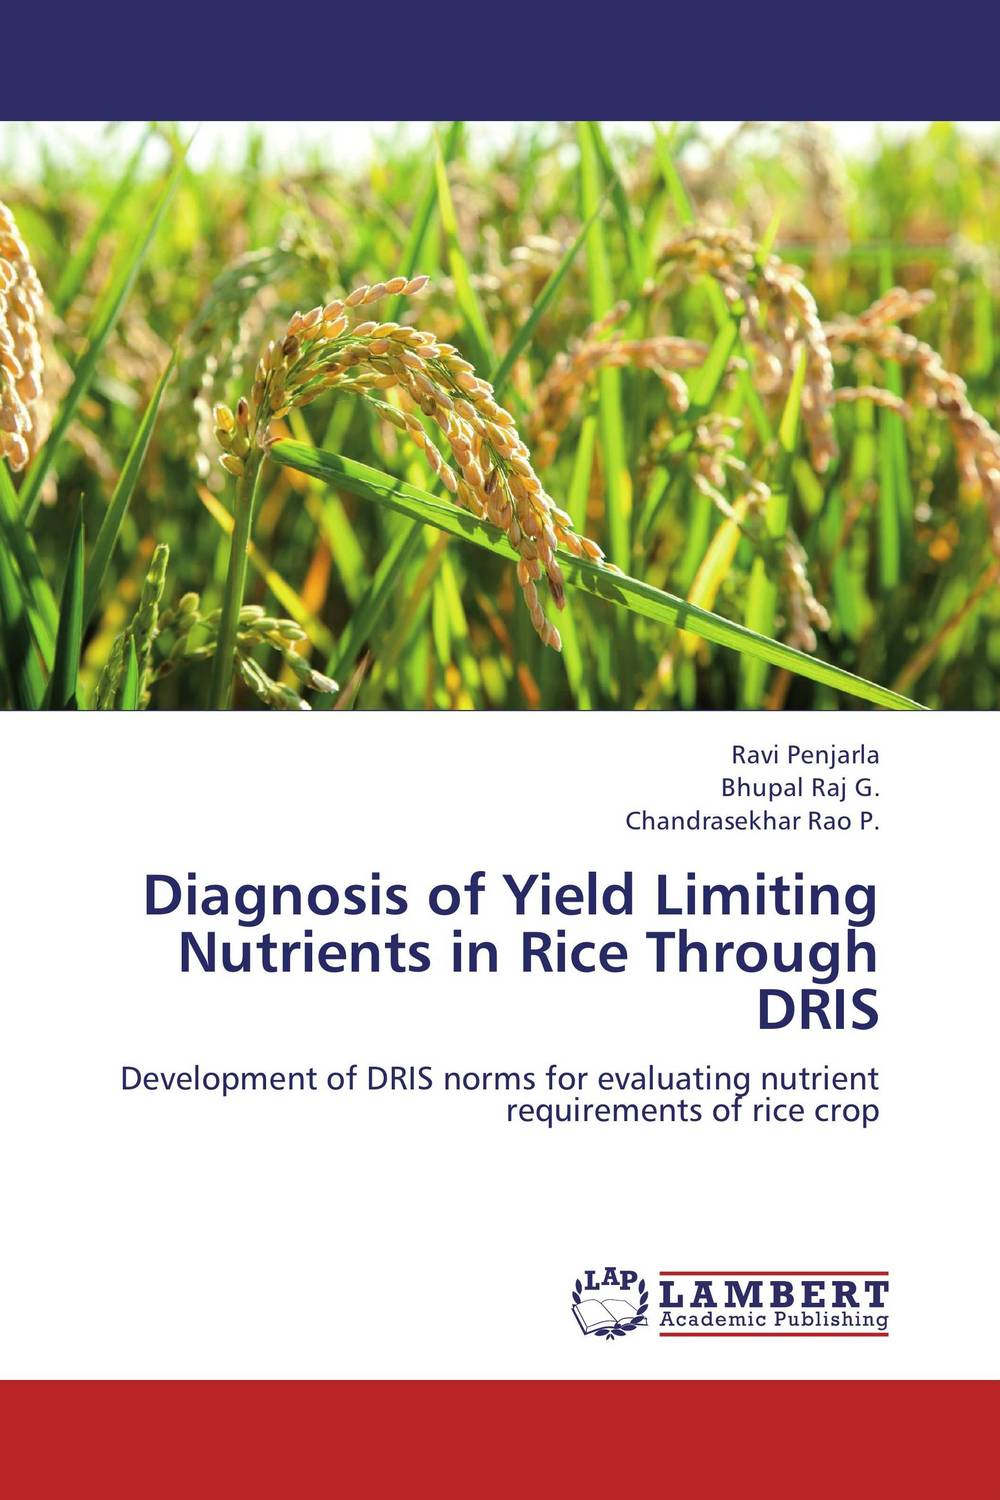 Diagnosis of Yield Limiting Nutrients in Rice Through DRIS franke bibliotheca cardiologica ballistocardiogra phy research and computer diagnosis